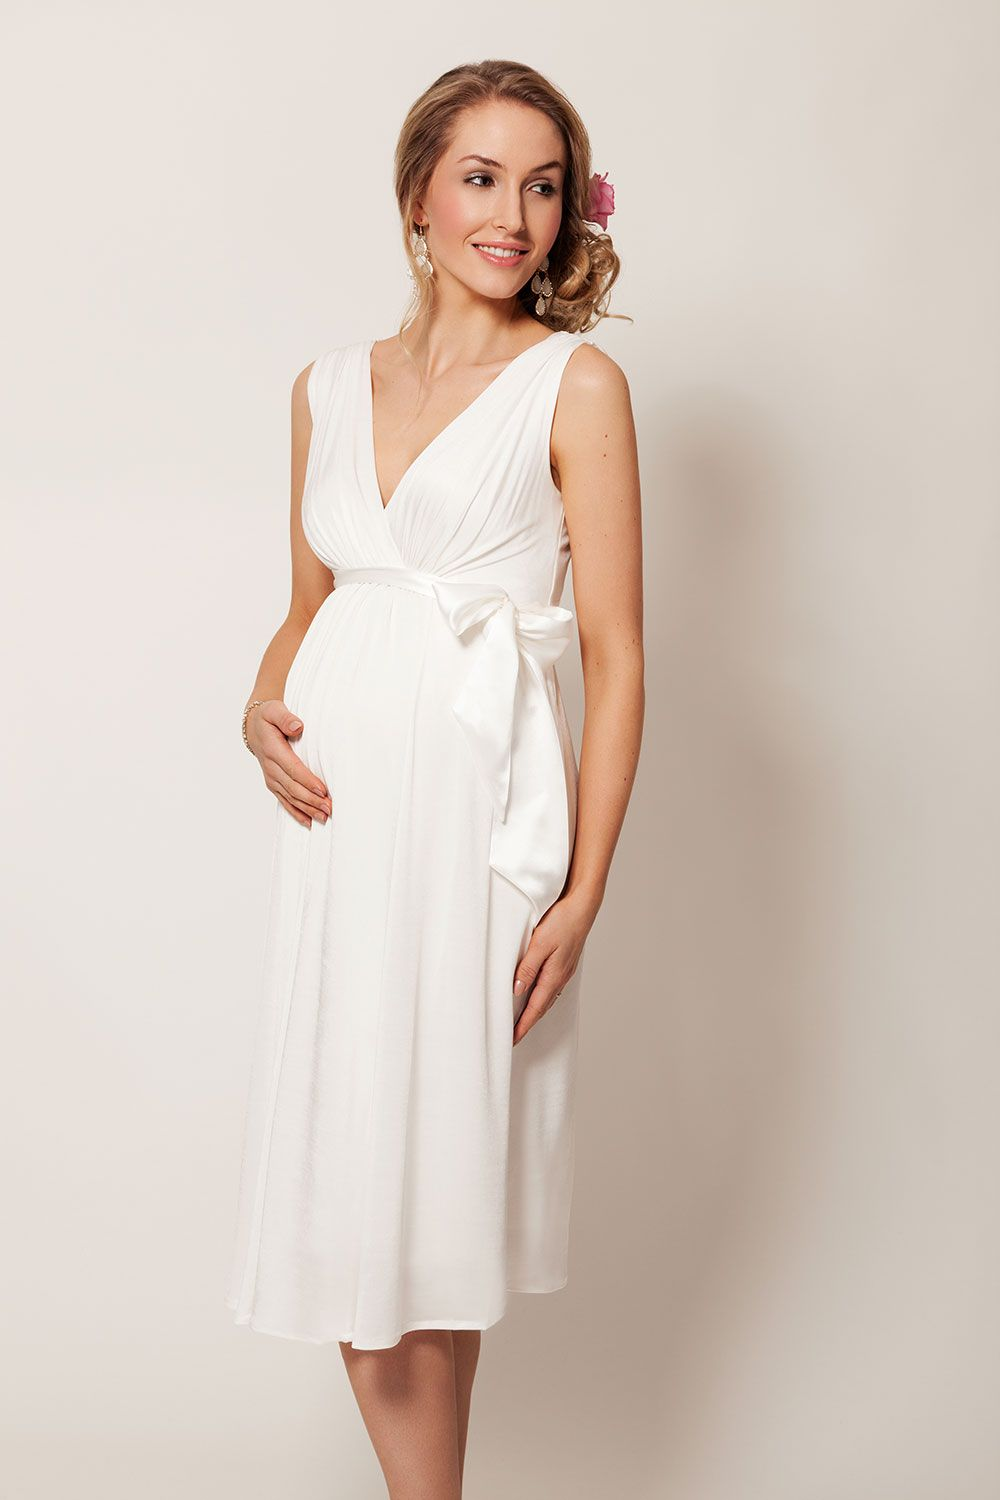 000a3dade If you are considering wearing a shorter length wedding dress then this  gorgeous Grecian style wedding dress could be perfect for you.